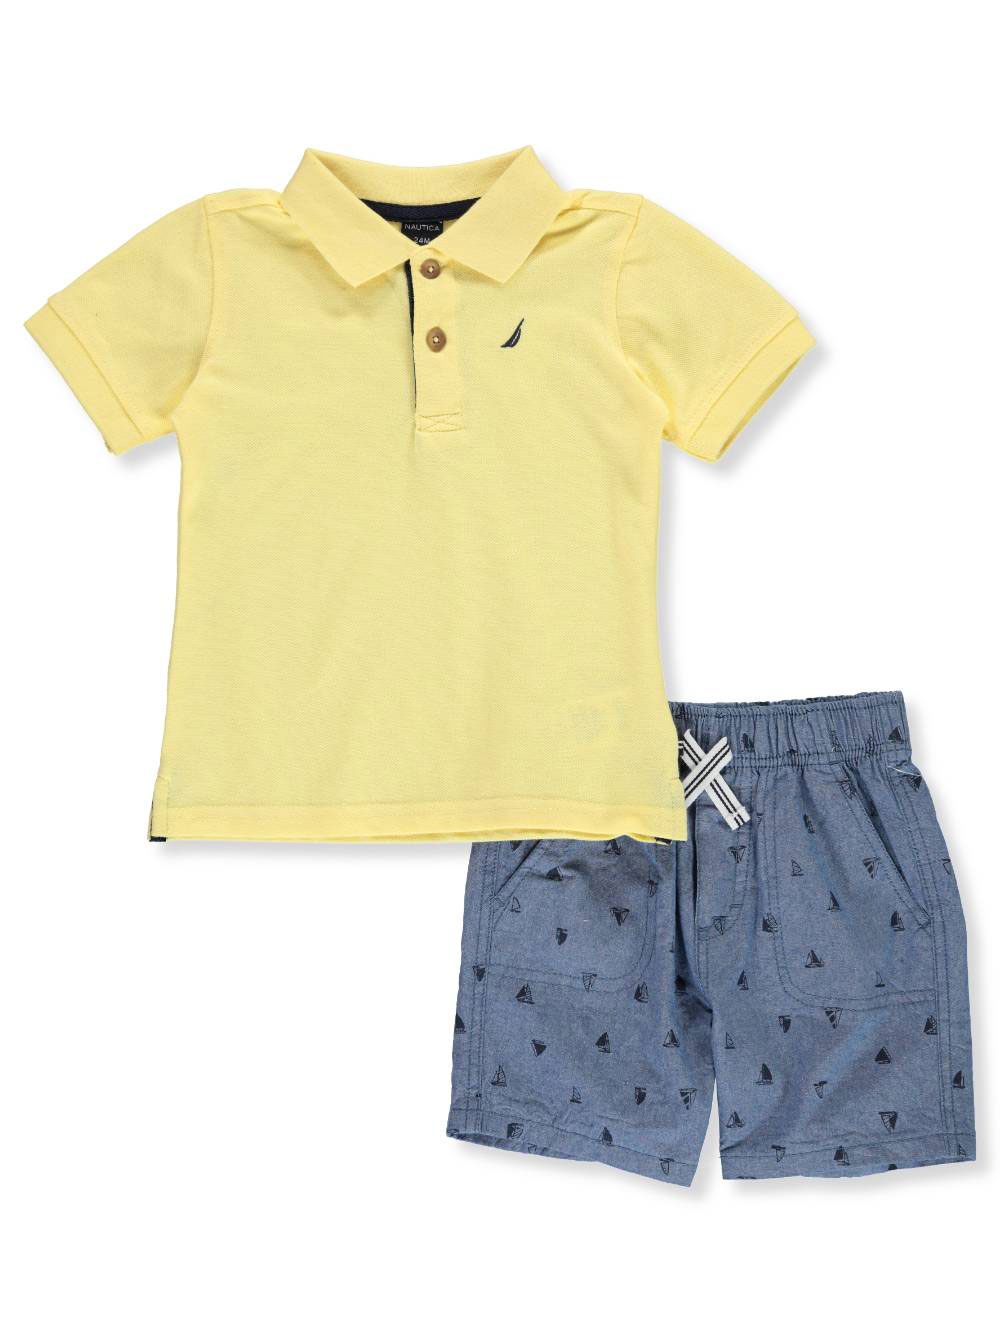 12784f72b Baby Boys' 2-Piece Shorts Set Outfit by Nautica in Yellow blue from Cookie's  Kids